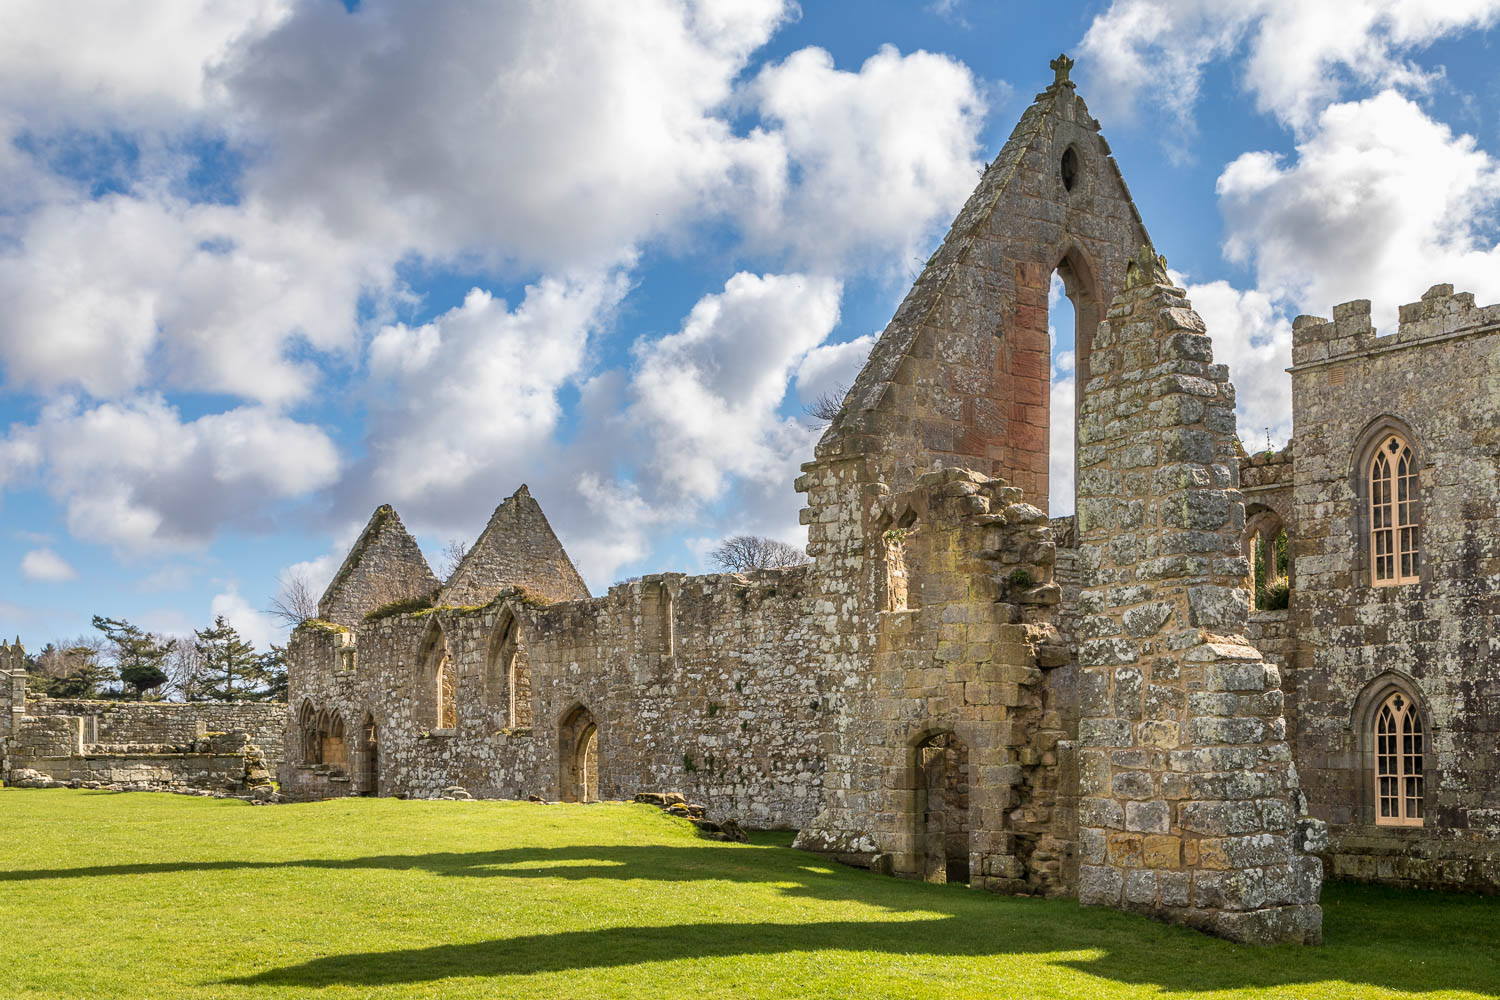 Hulne Priory, Hulne Abbey